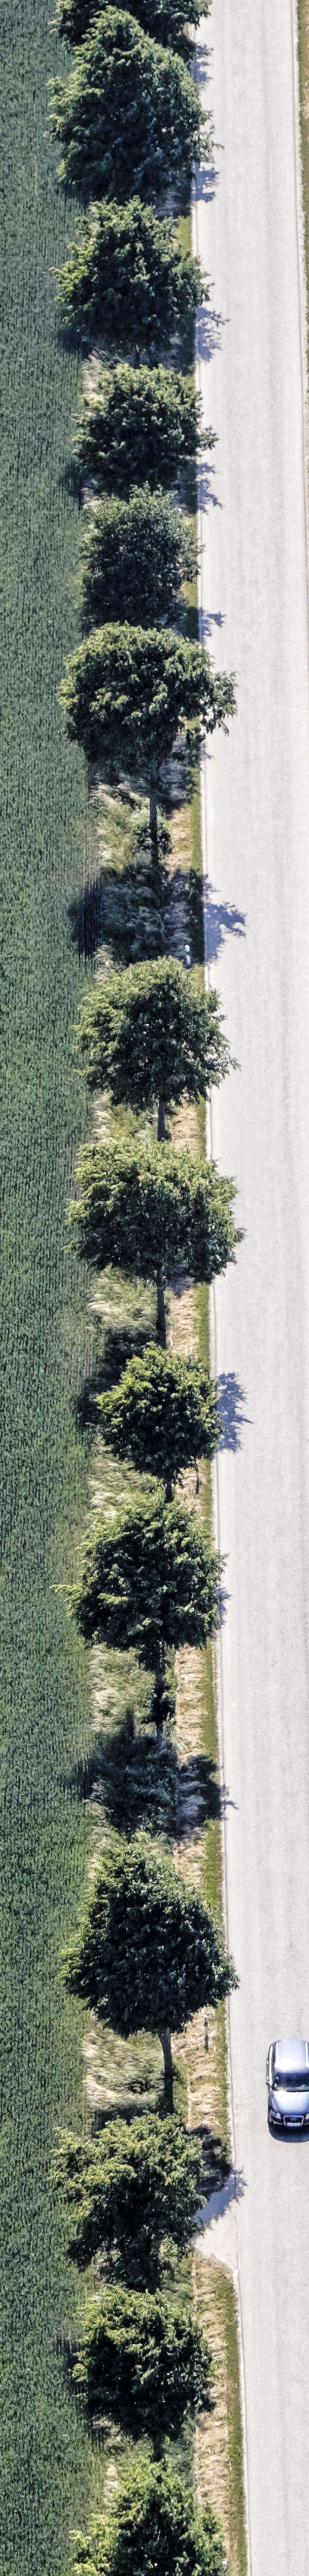 Aerial view of a row of trees at the roadside between wheat fields - Klaus Leidorf Aerial Photography